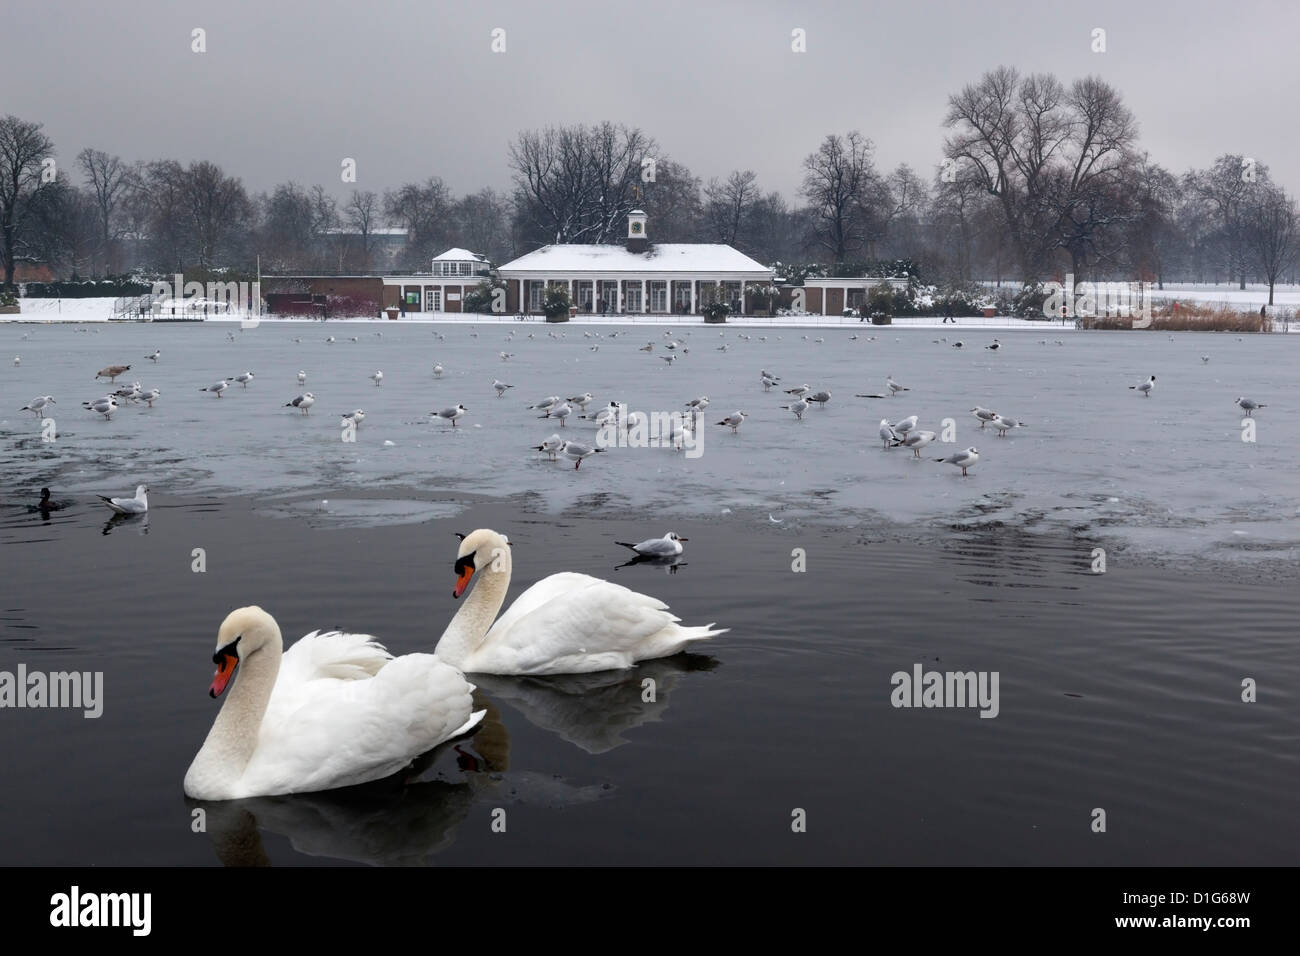 The Serpentine in winter, Hyde Park, London, England, United Kingdom, Europe - Stock Image